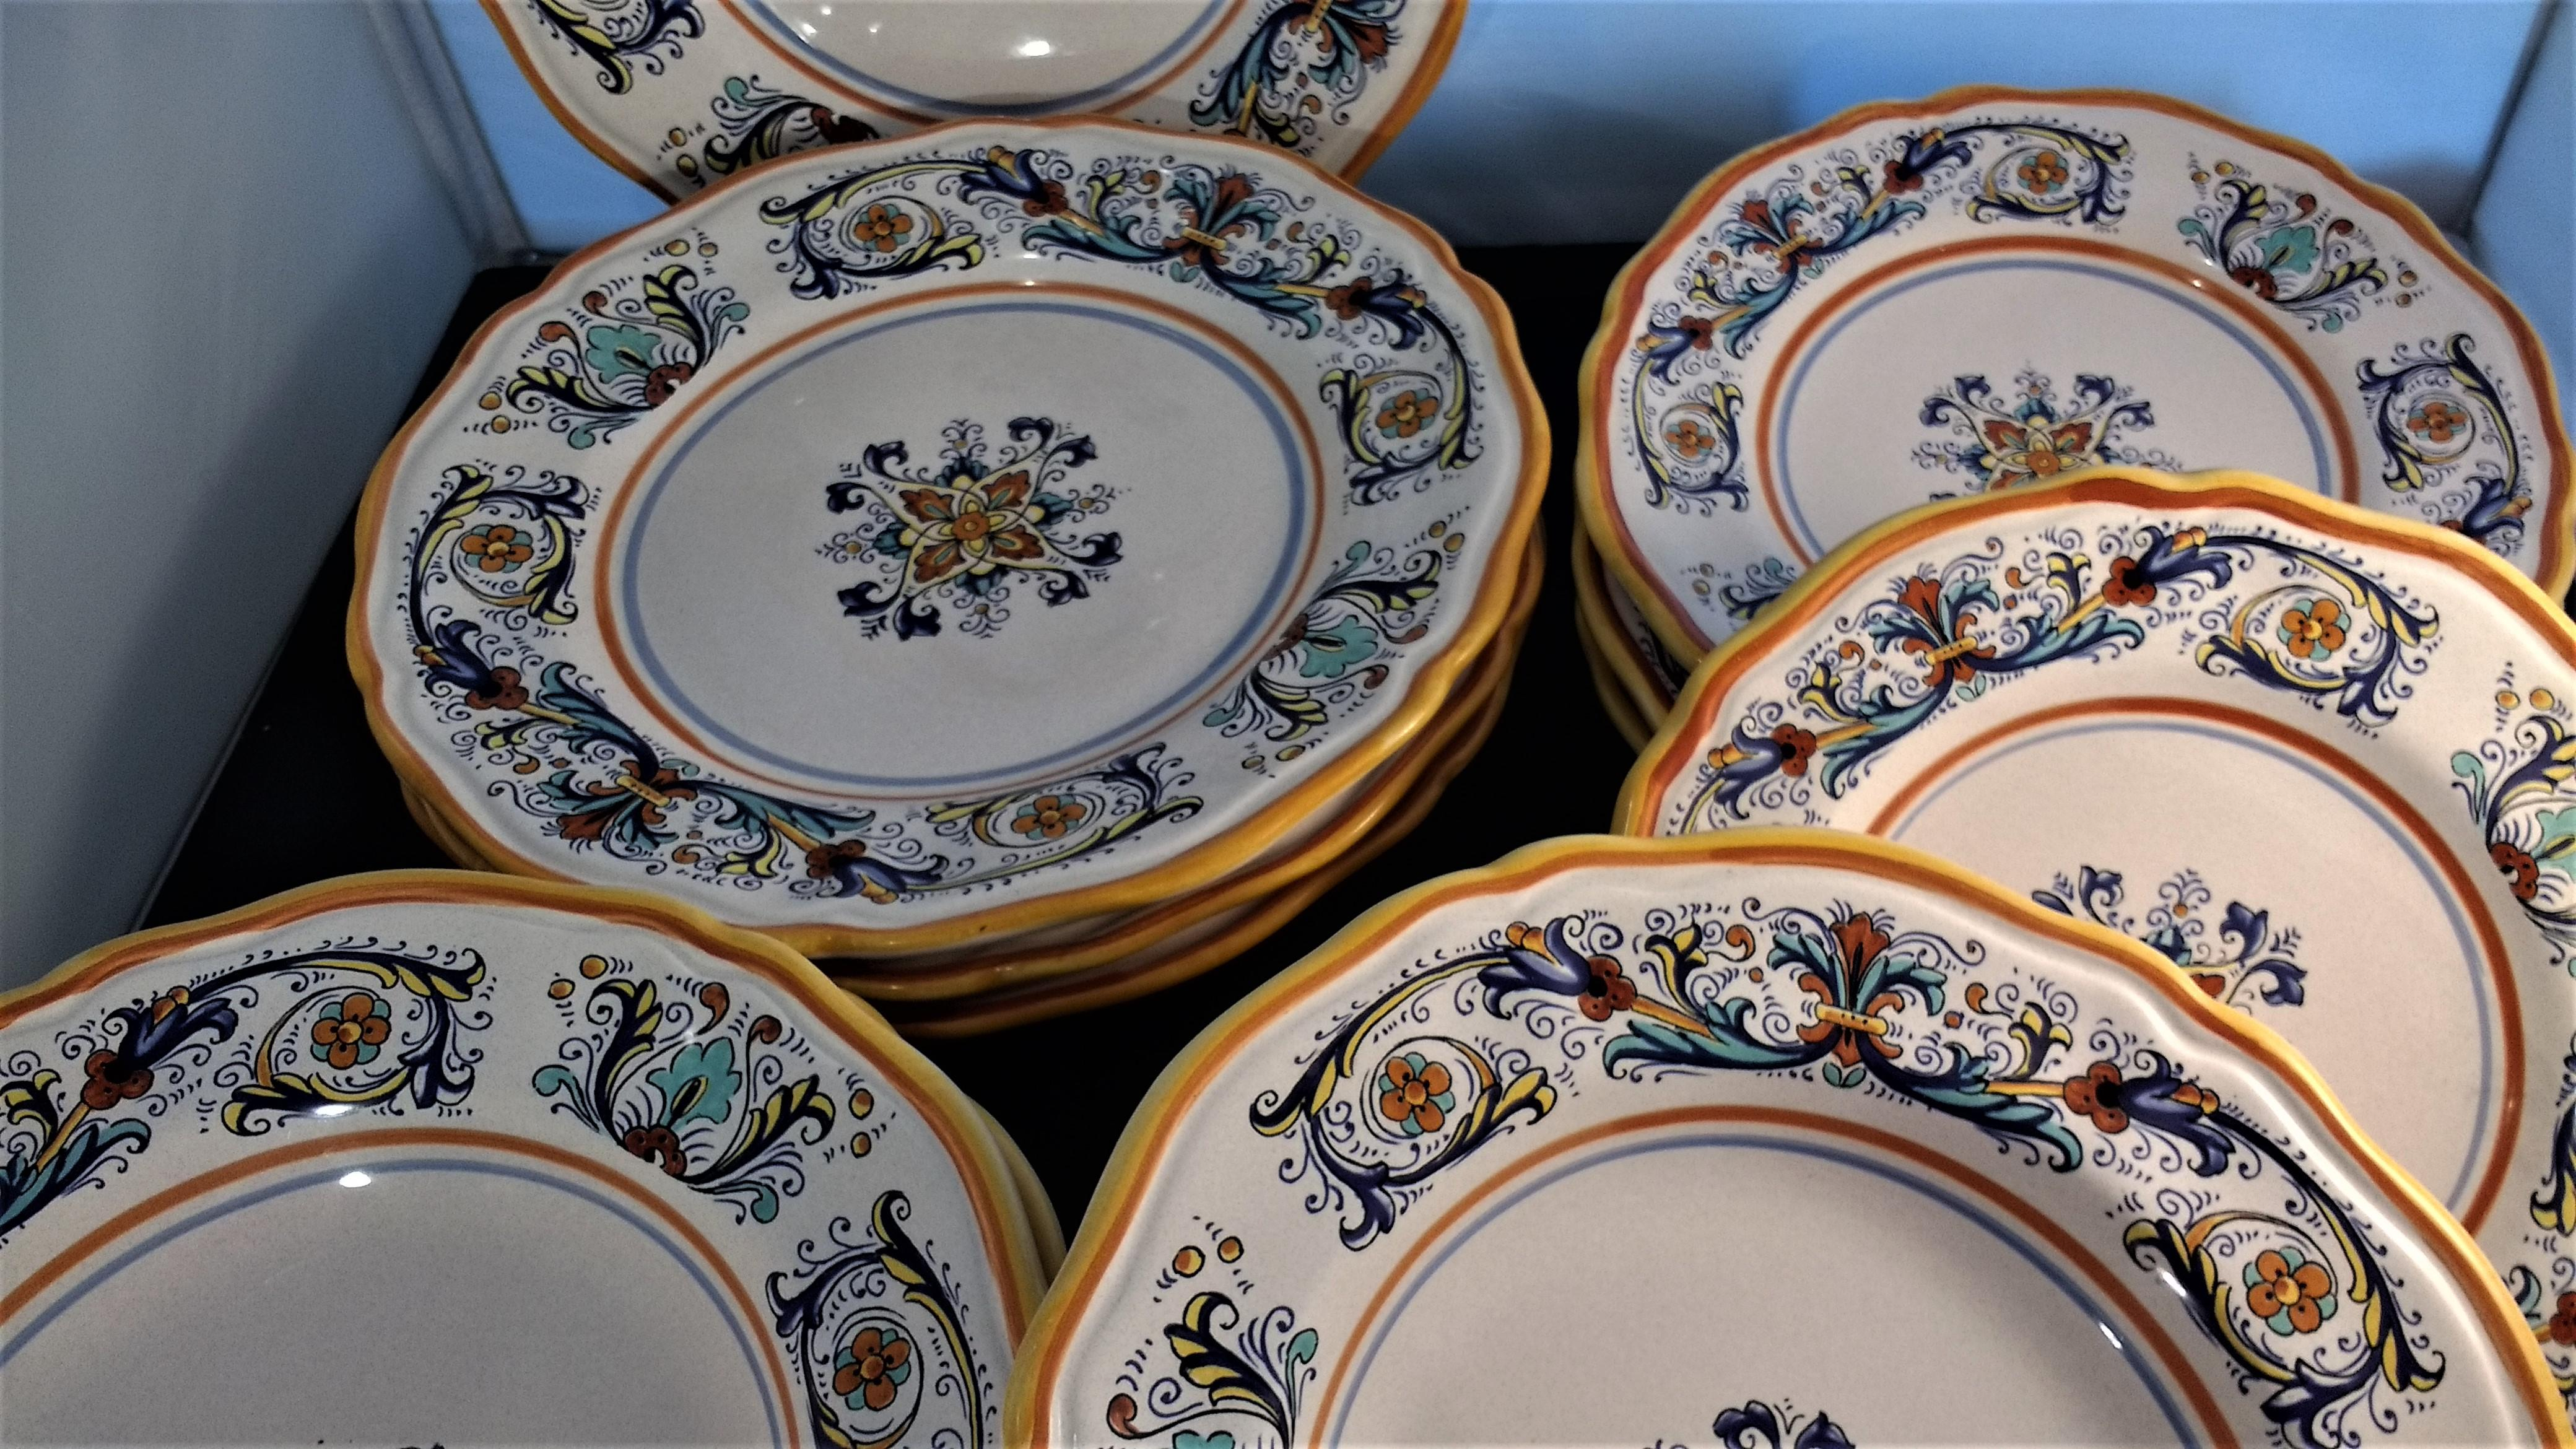 Retired Pattern Nova Deruta Dishes - Set of 12 - Image 3 of 5  sc 1 st  Chairish & Retired Pattern Nova Deruta Dishes - Set of 12 | Chairish